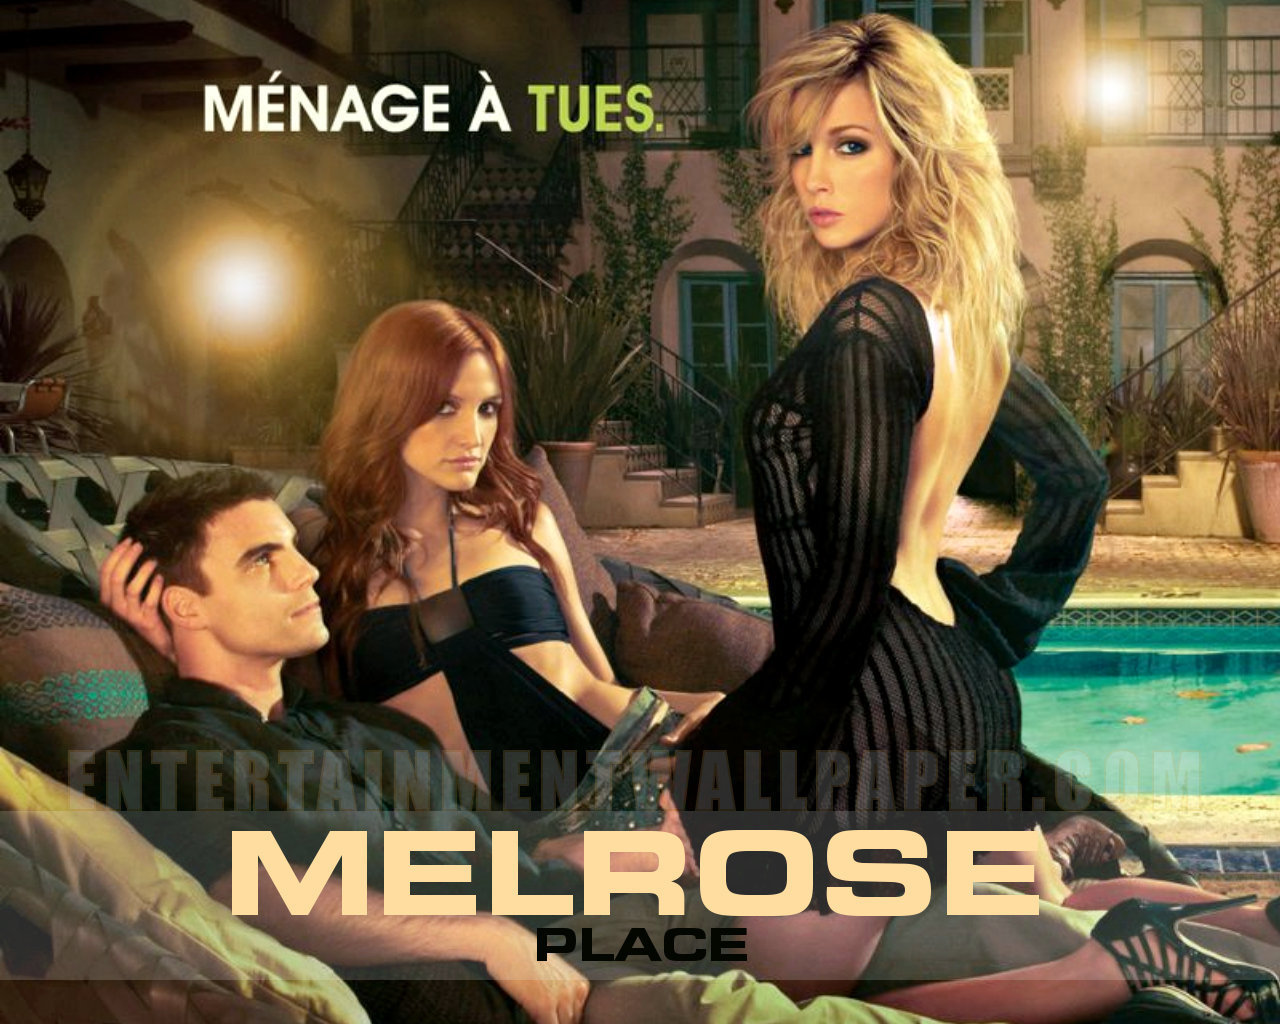 Melrose Place wallpapers - Melrose Place Wallpaper ... Ashlee Simpson Facebook